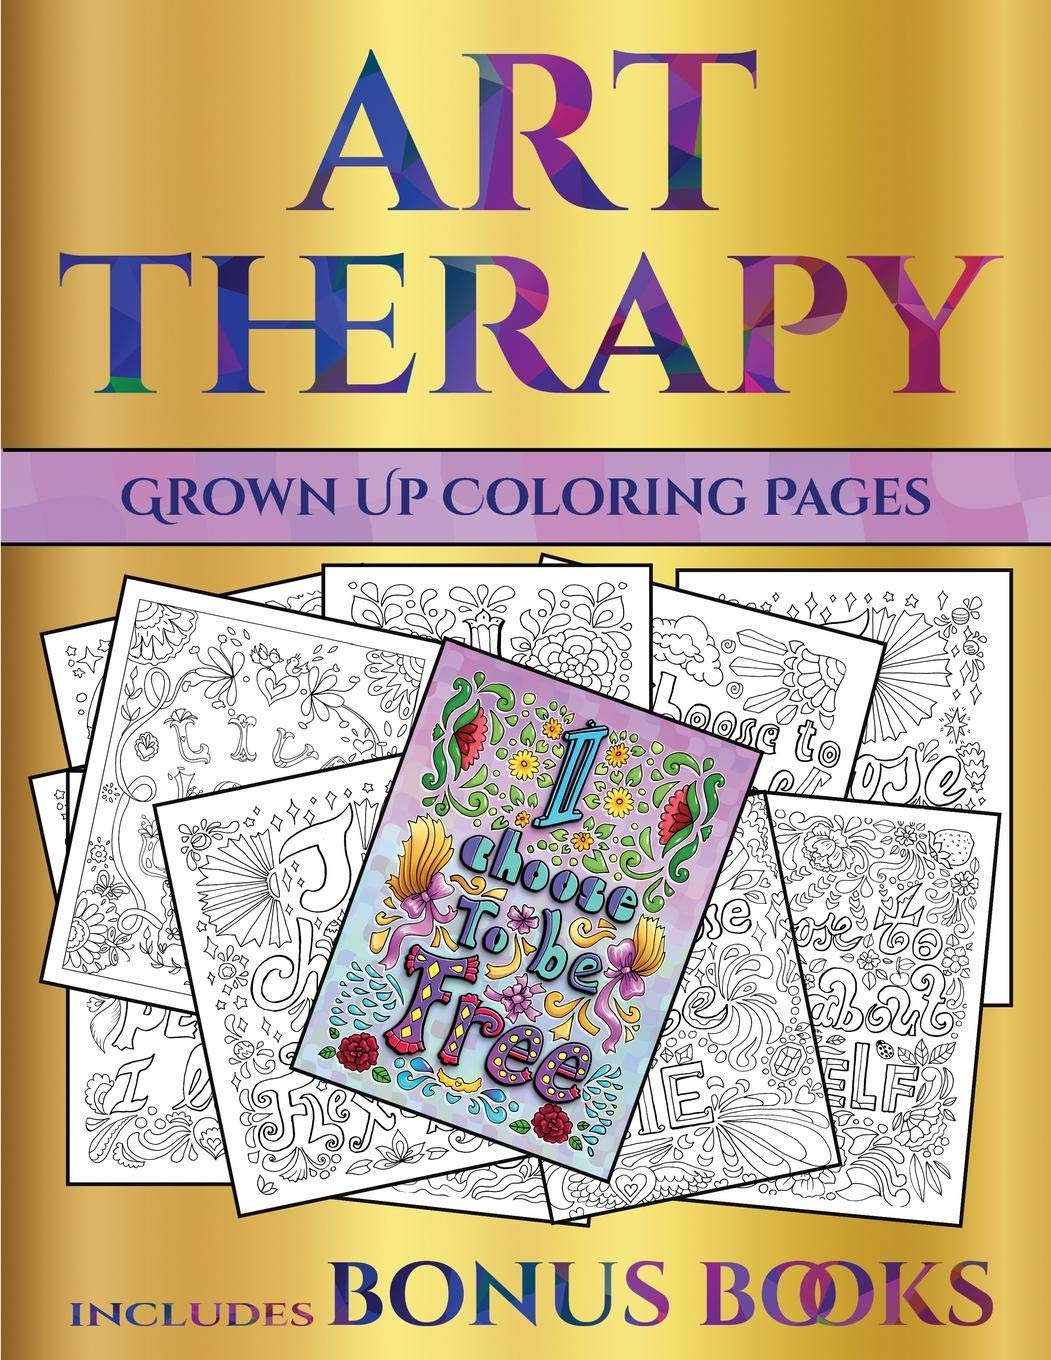 - Grown Up Coloring Pages (Art Therapy): This Book Has 40 Art